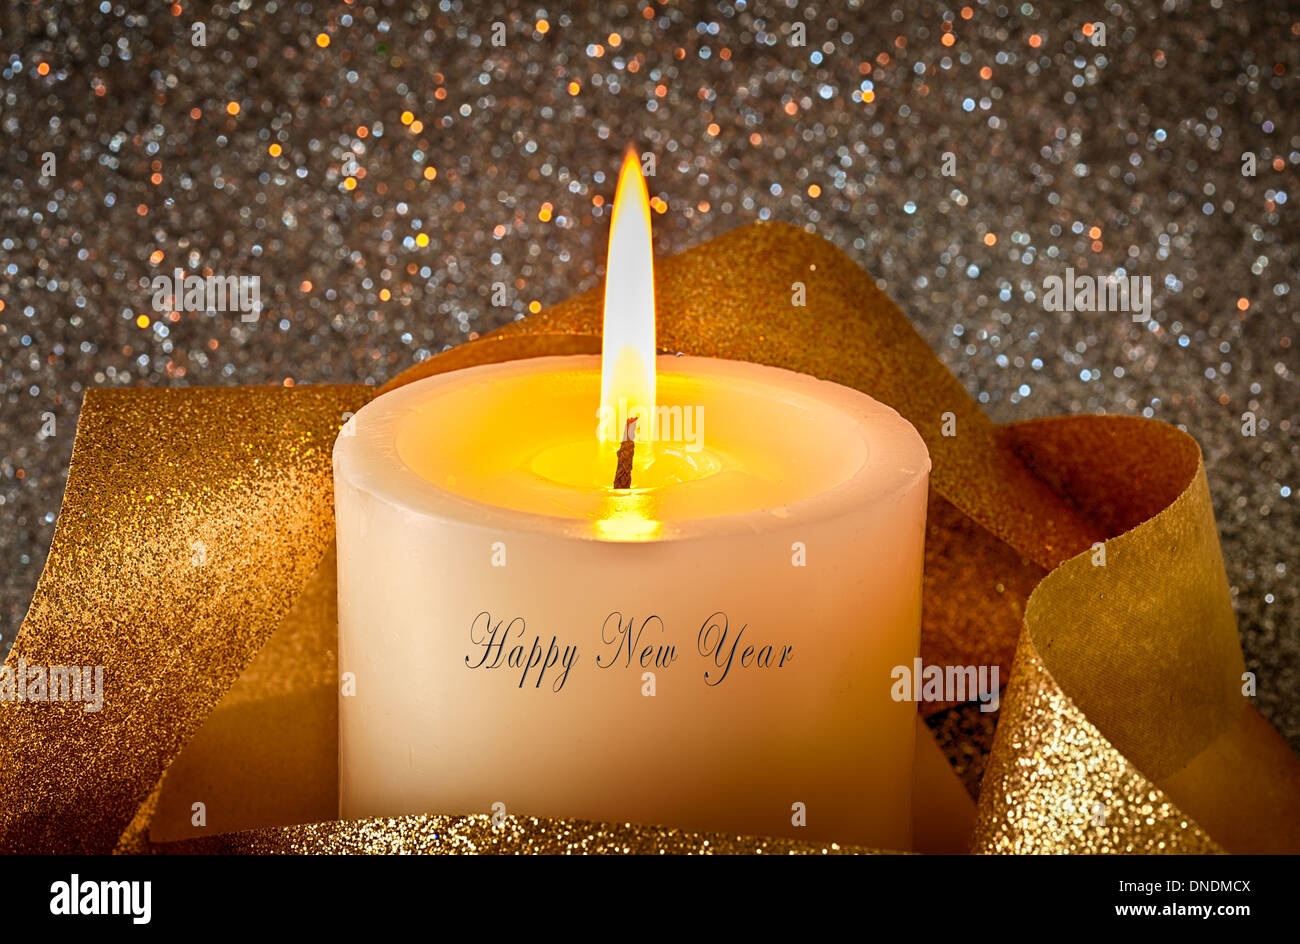 Candle with glitter and gold, and Happy New Year text - Stock Image